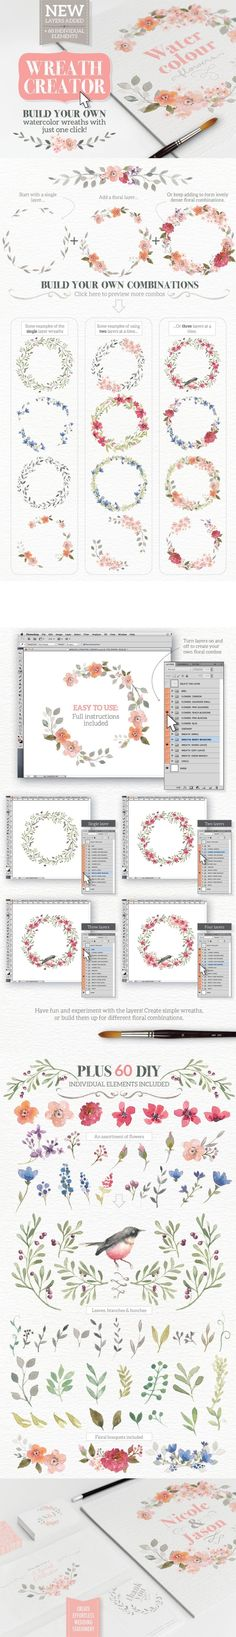 Watercolour Wreath Creator (Photoshop and Illustrator) Wreath Watercolor, Watercolor Flowers, Brush Lettering, Digital Scrapbook Paper, Design Bundles, Creative Design, Design Elements, Illustration, Doodles